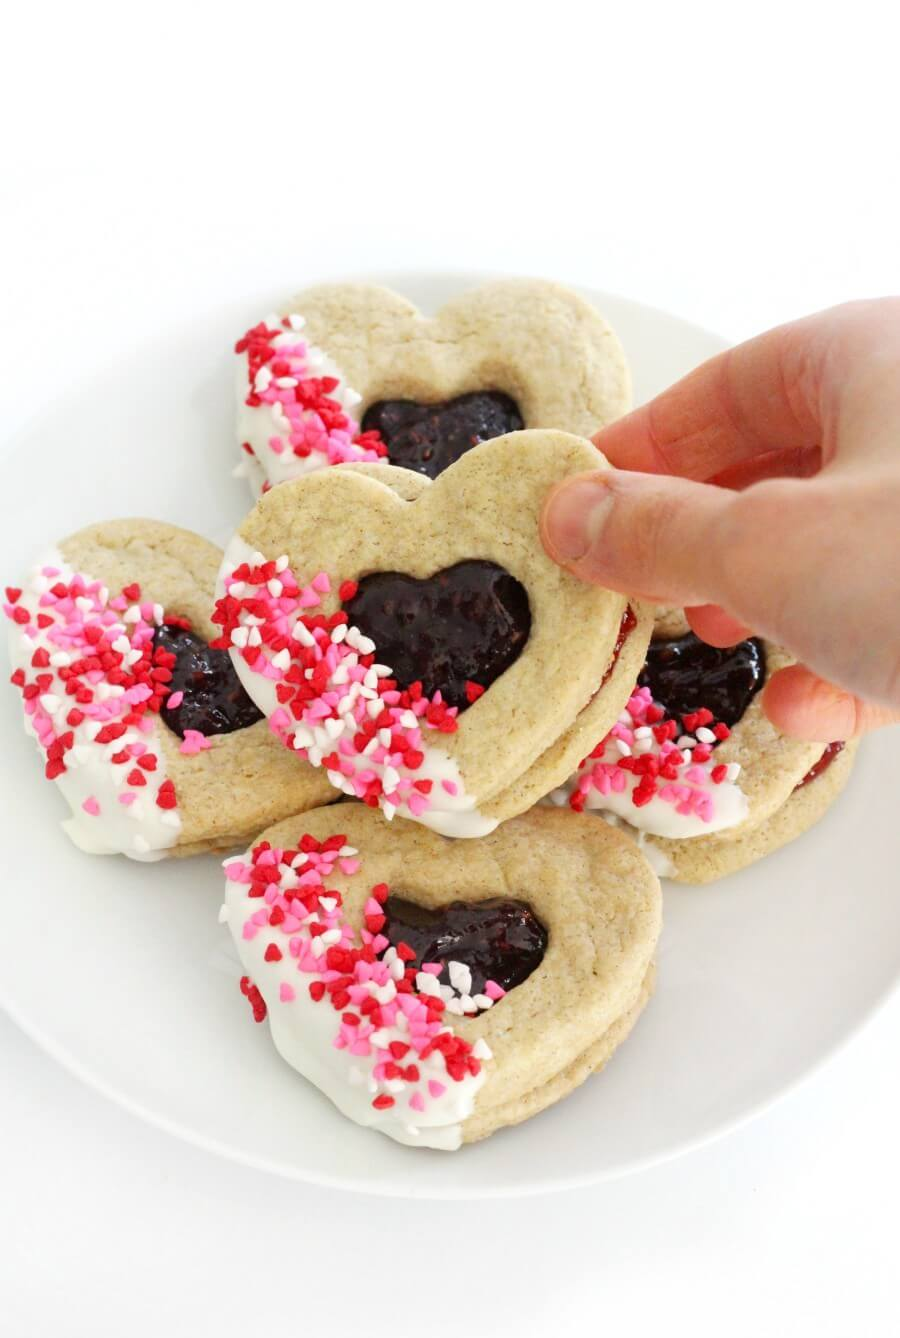 hand grabbing a gluten-free valentine's day heart cookie from plate